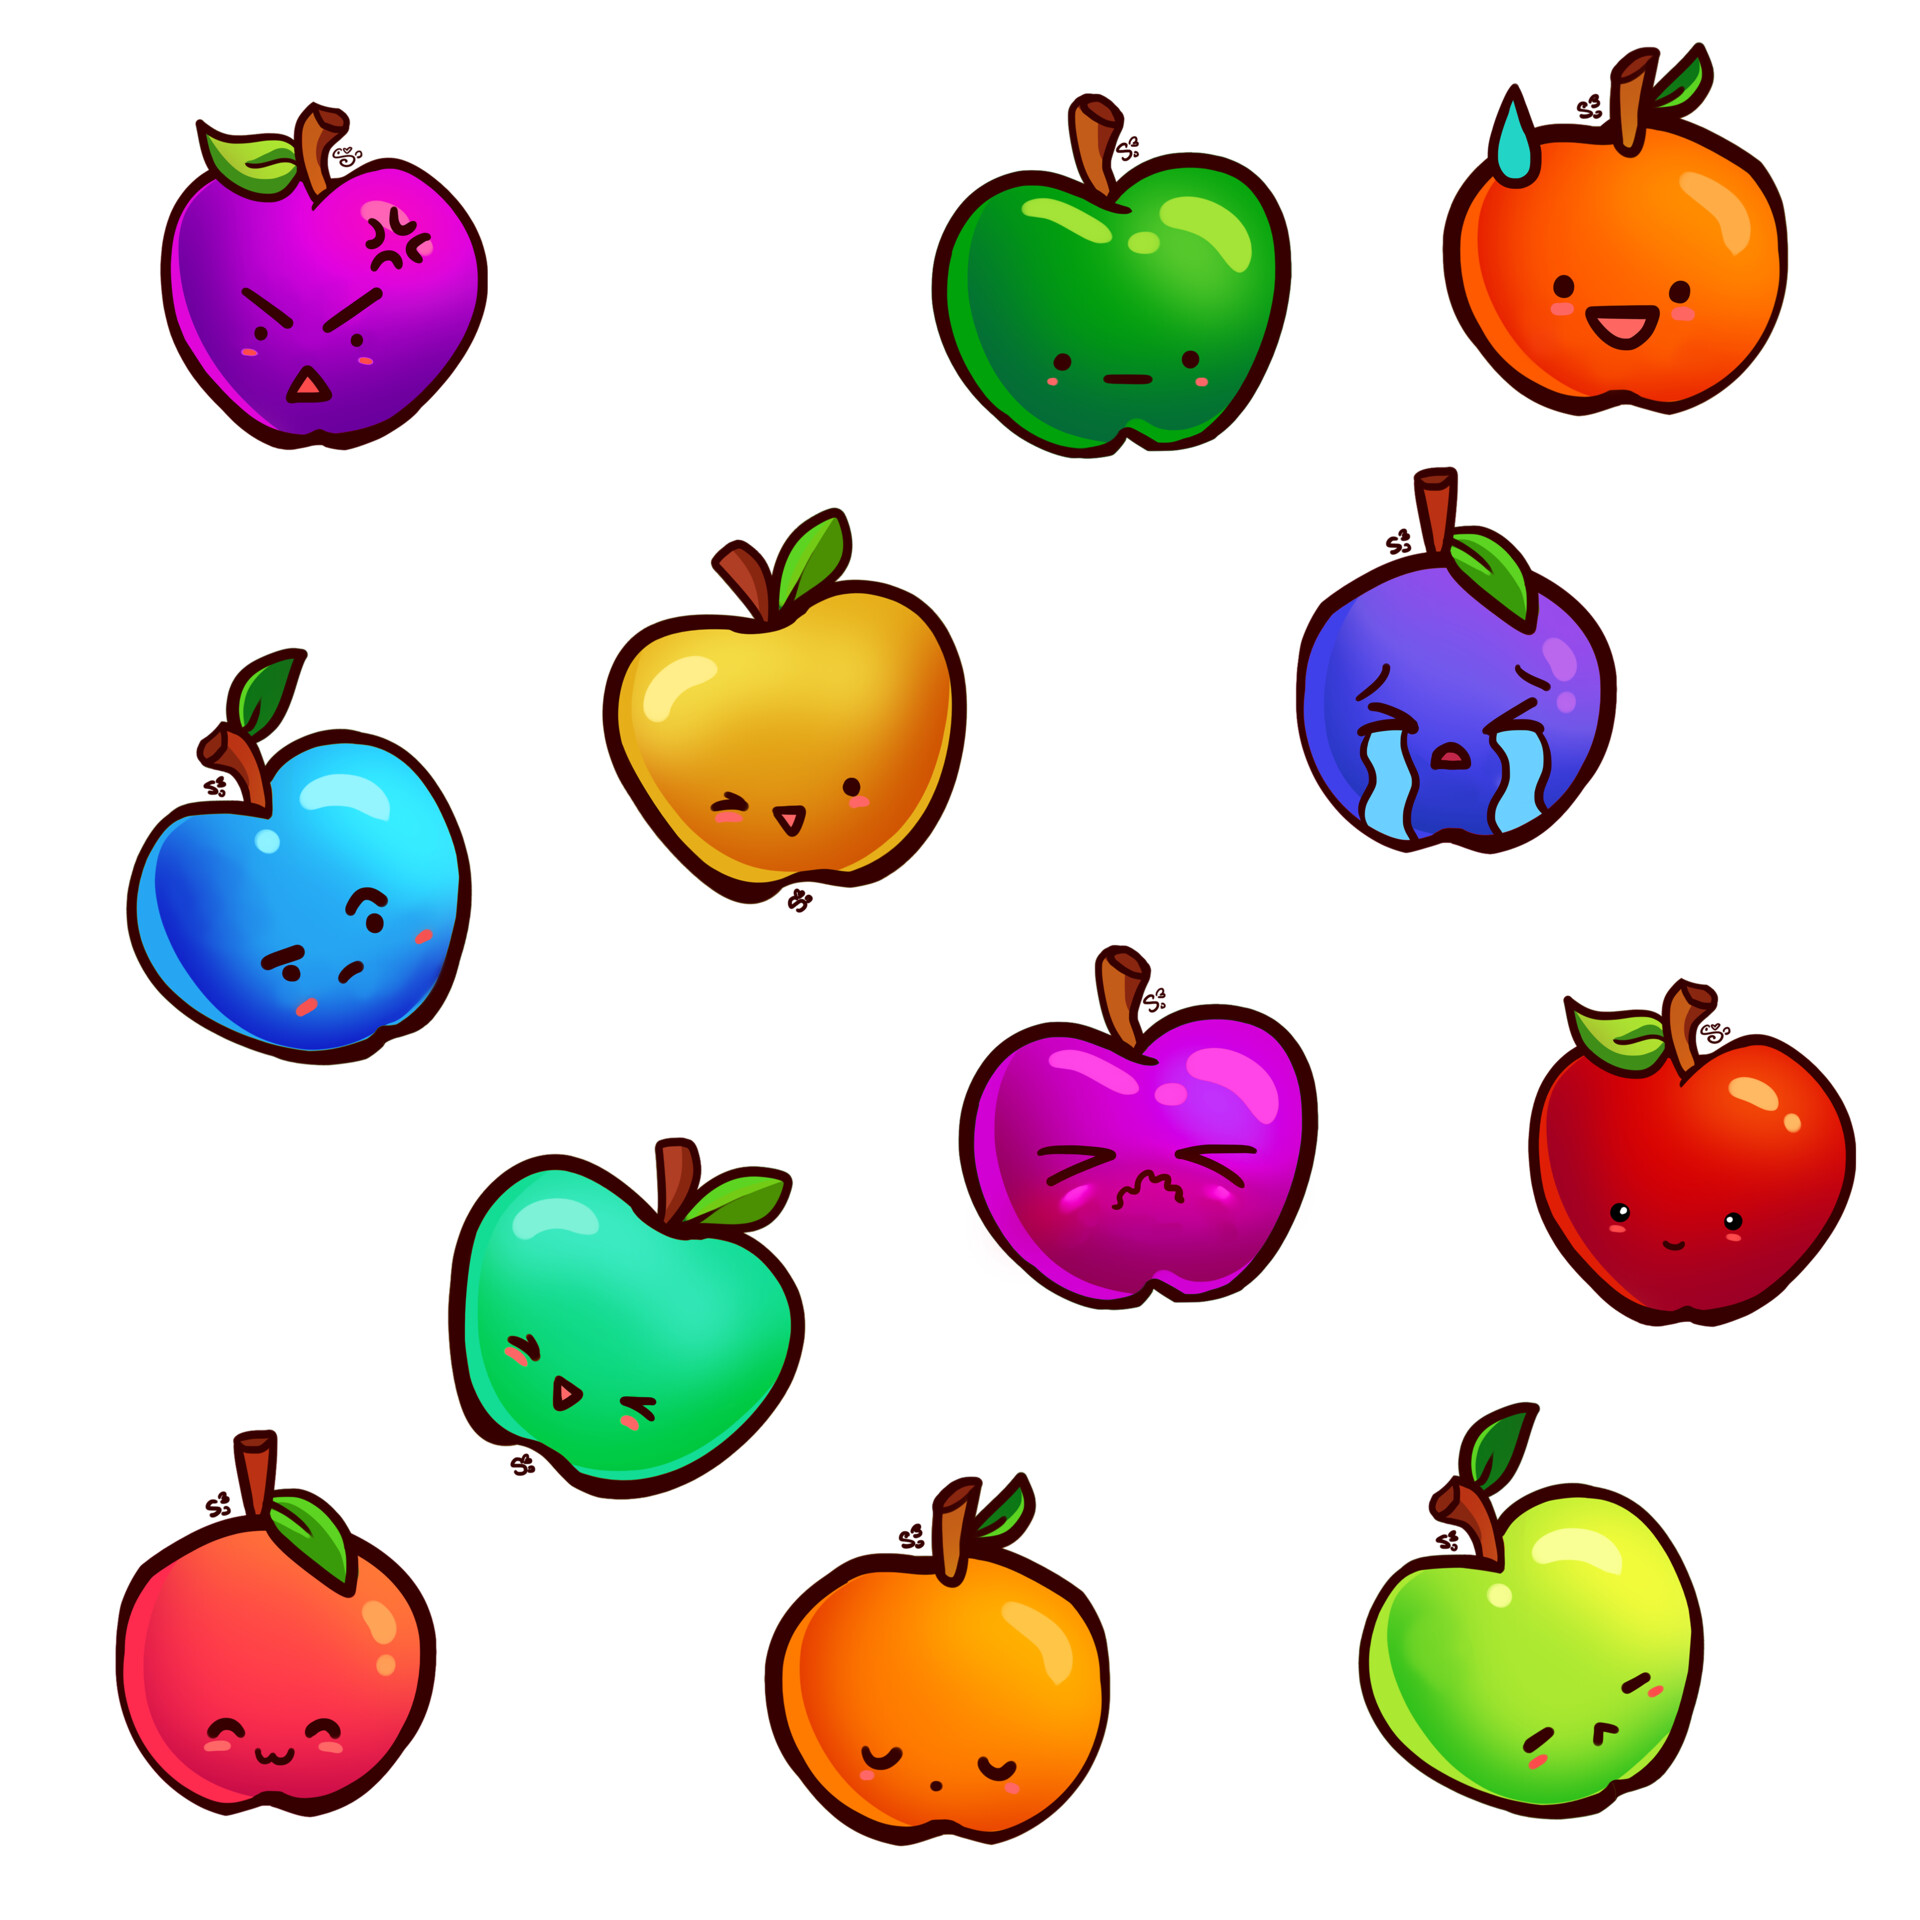 Poomki - Apples Expansion Pack